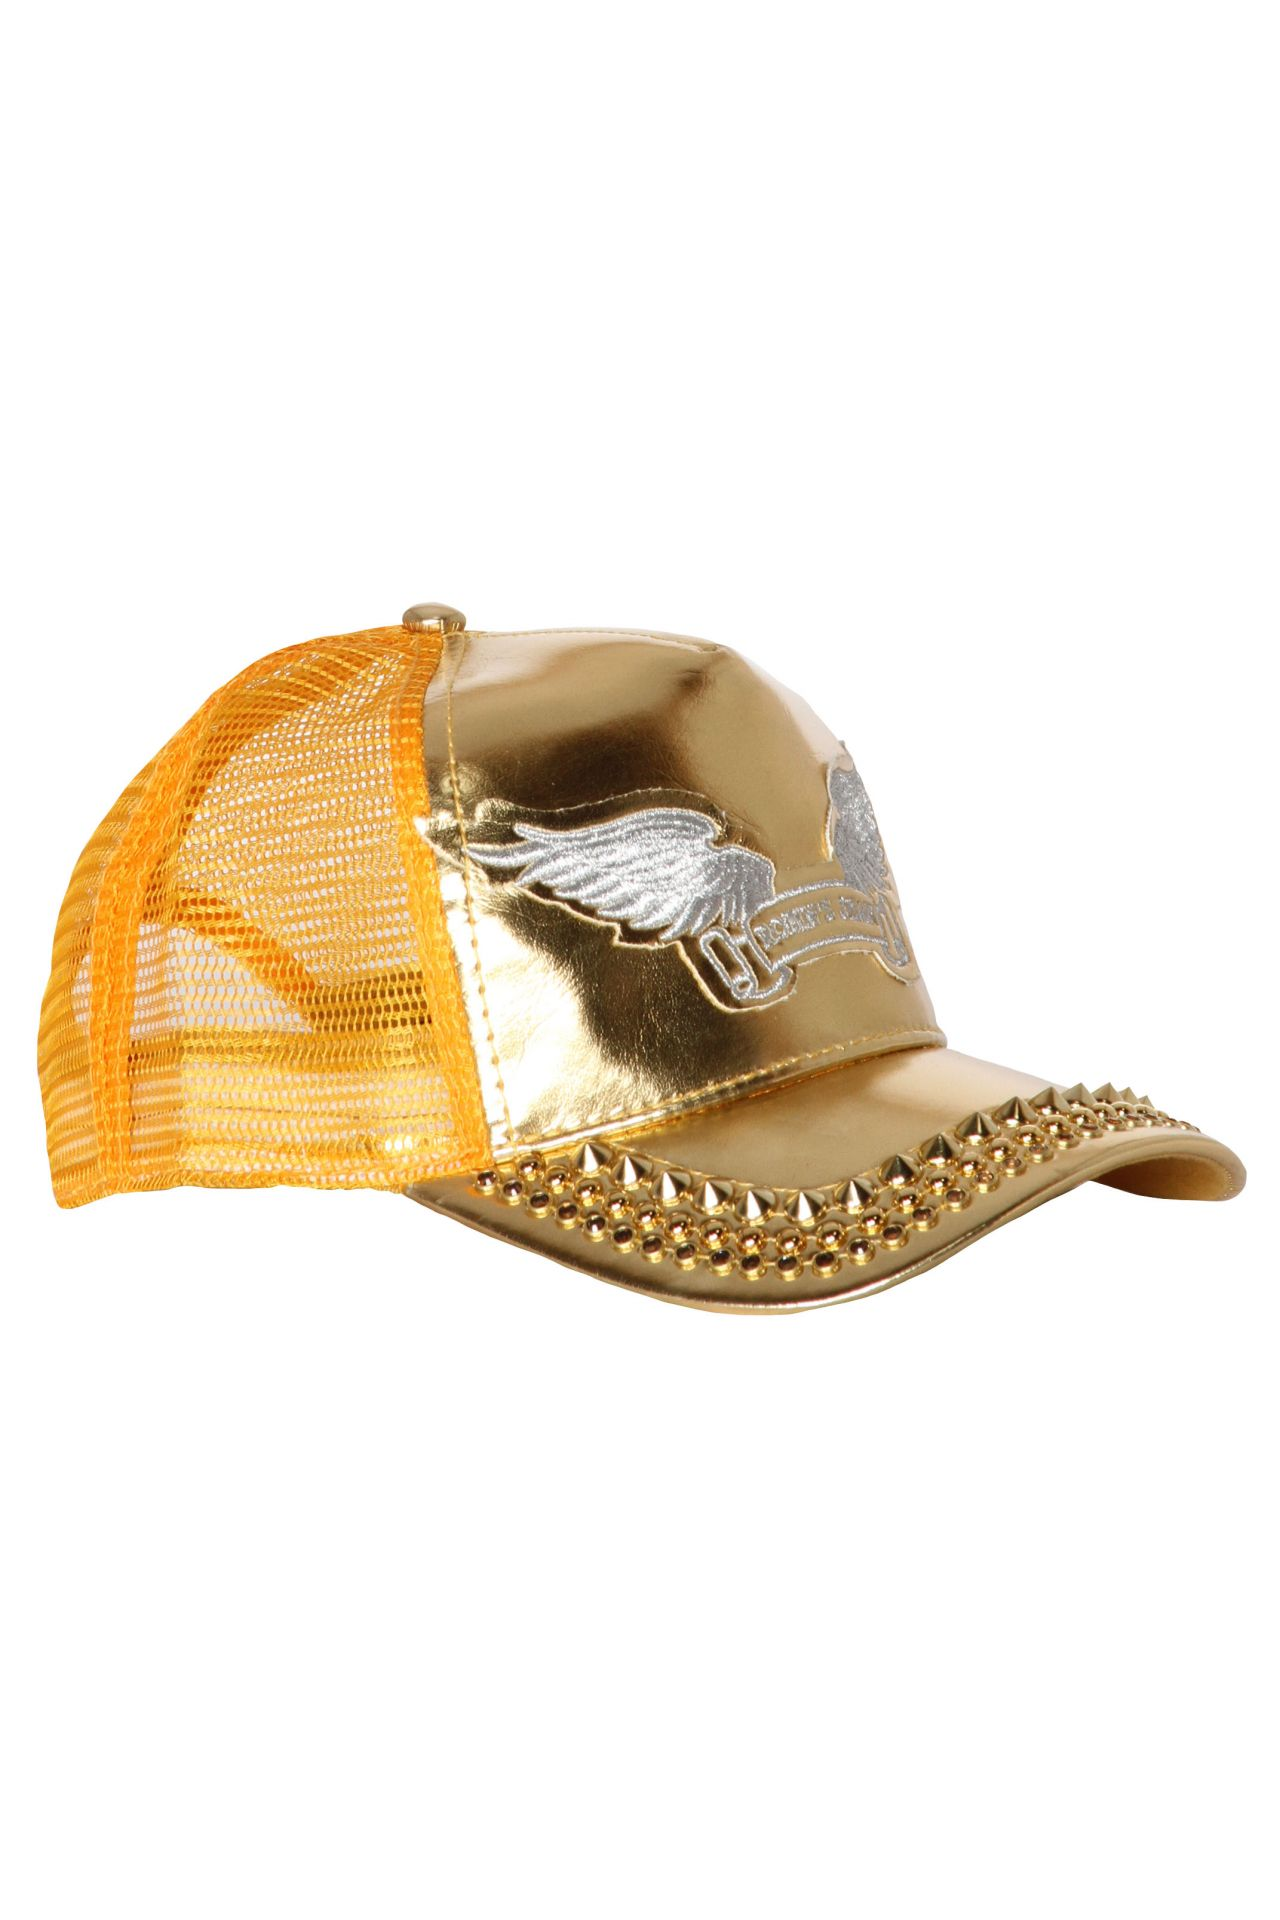 TRUCKER CAP IN GOLD WITH CRYSTALS